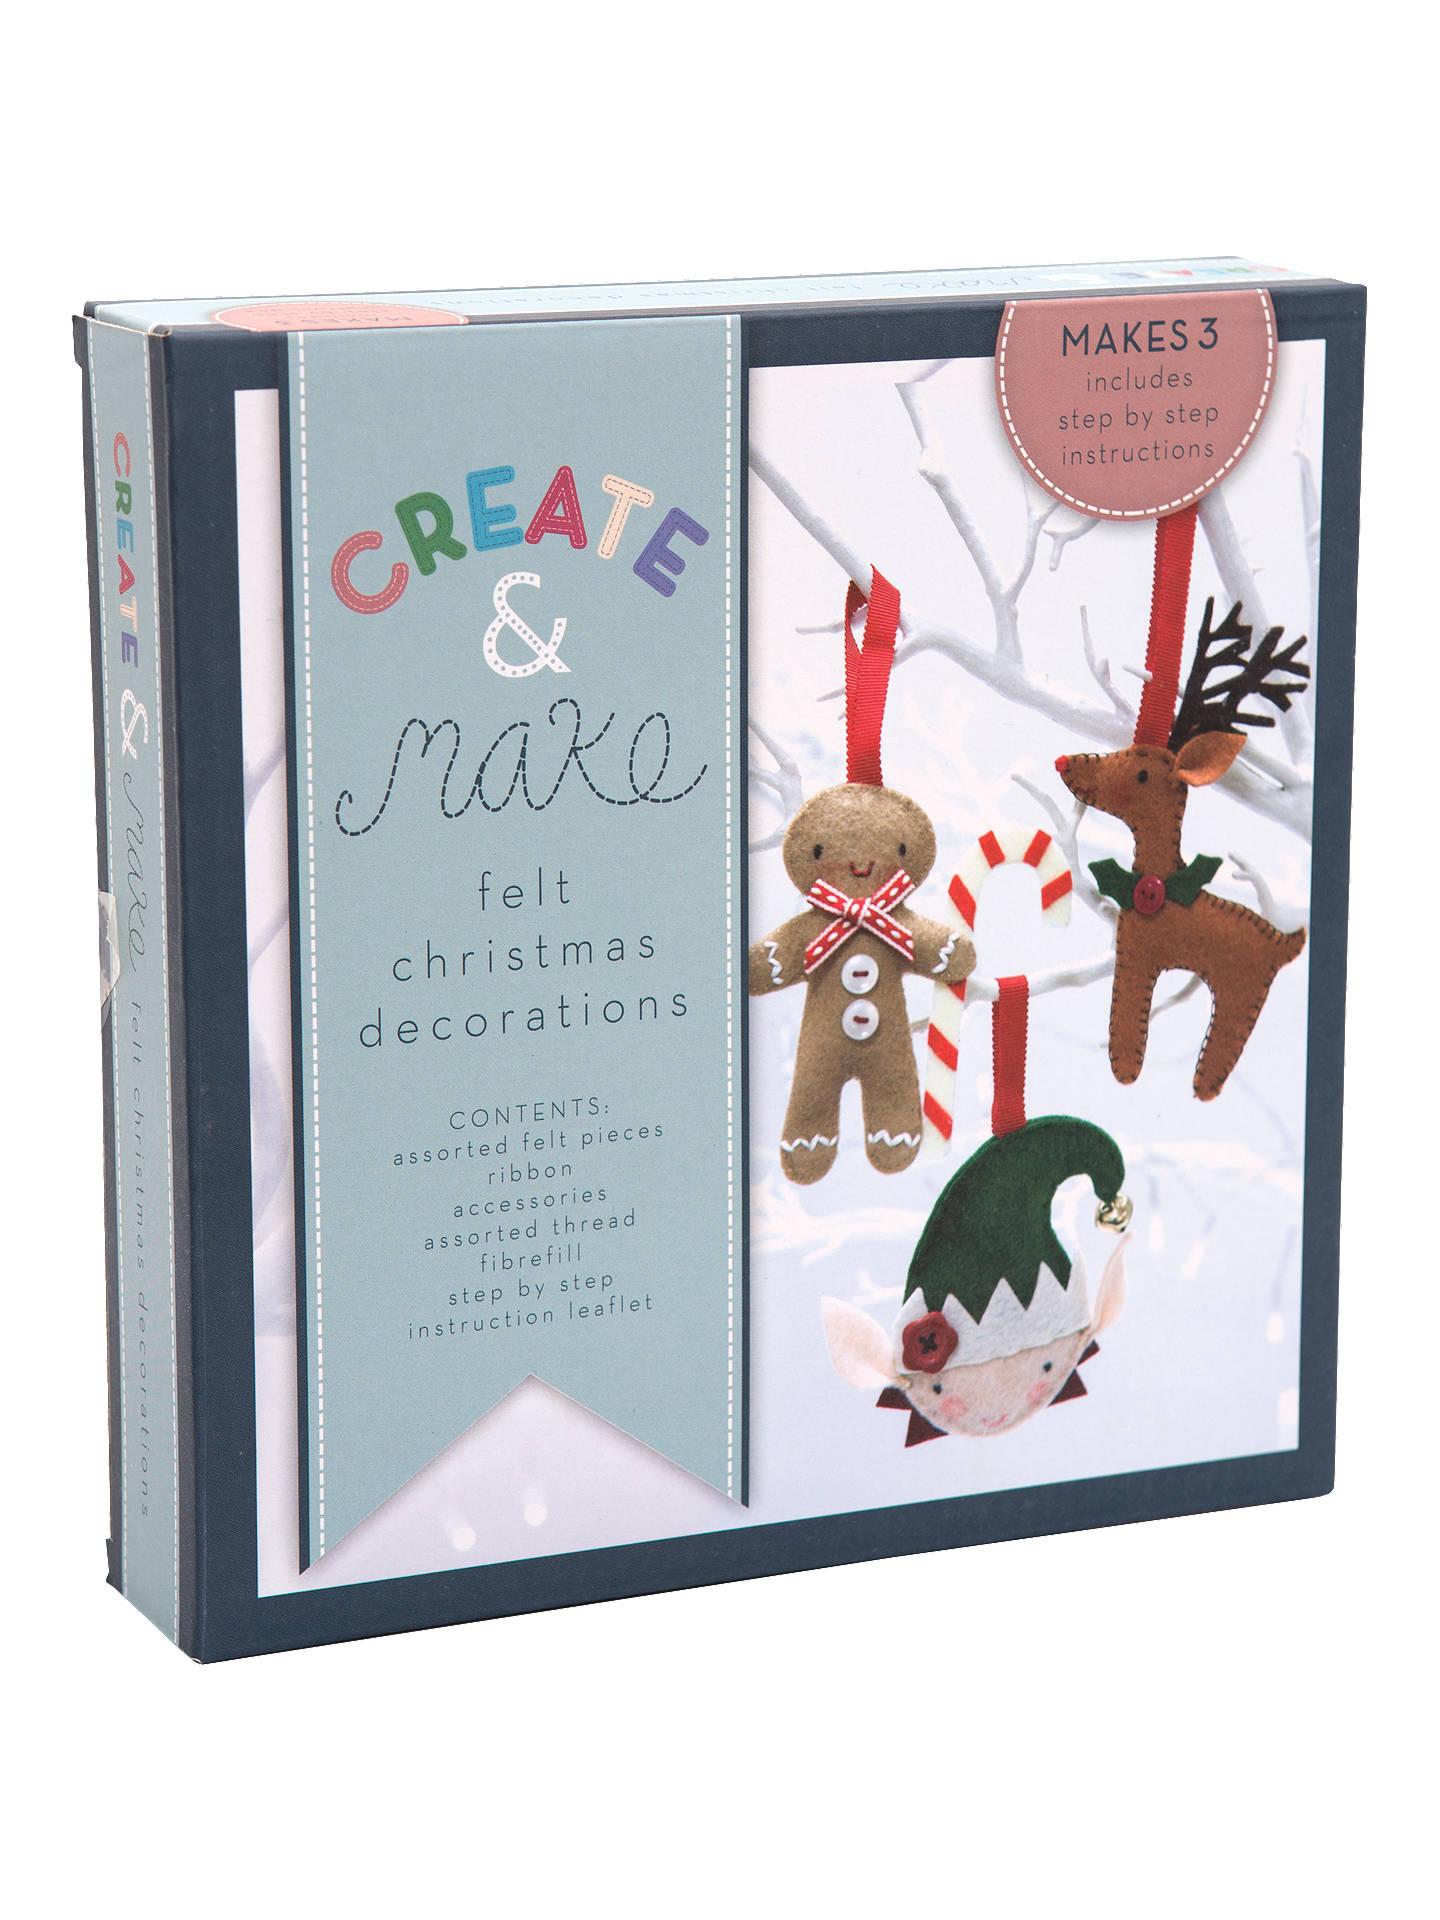 John Lewis Christmas Decorations.Create And Make Felt Christmas Decorations Pack Of 3 At